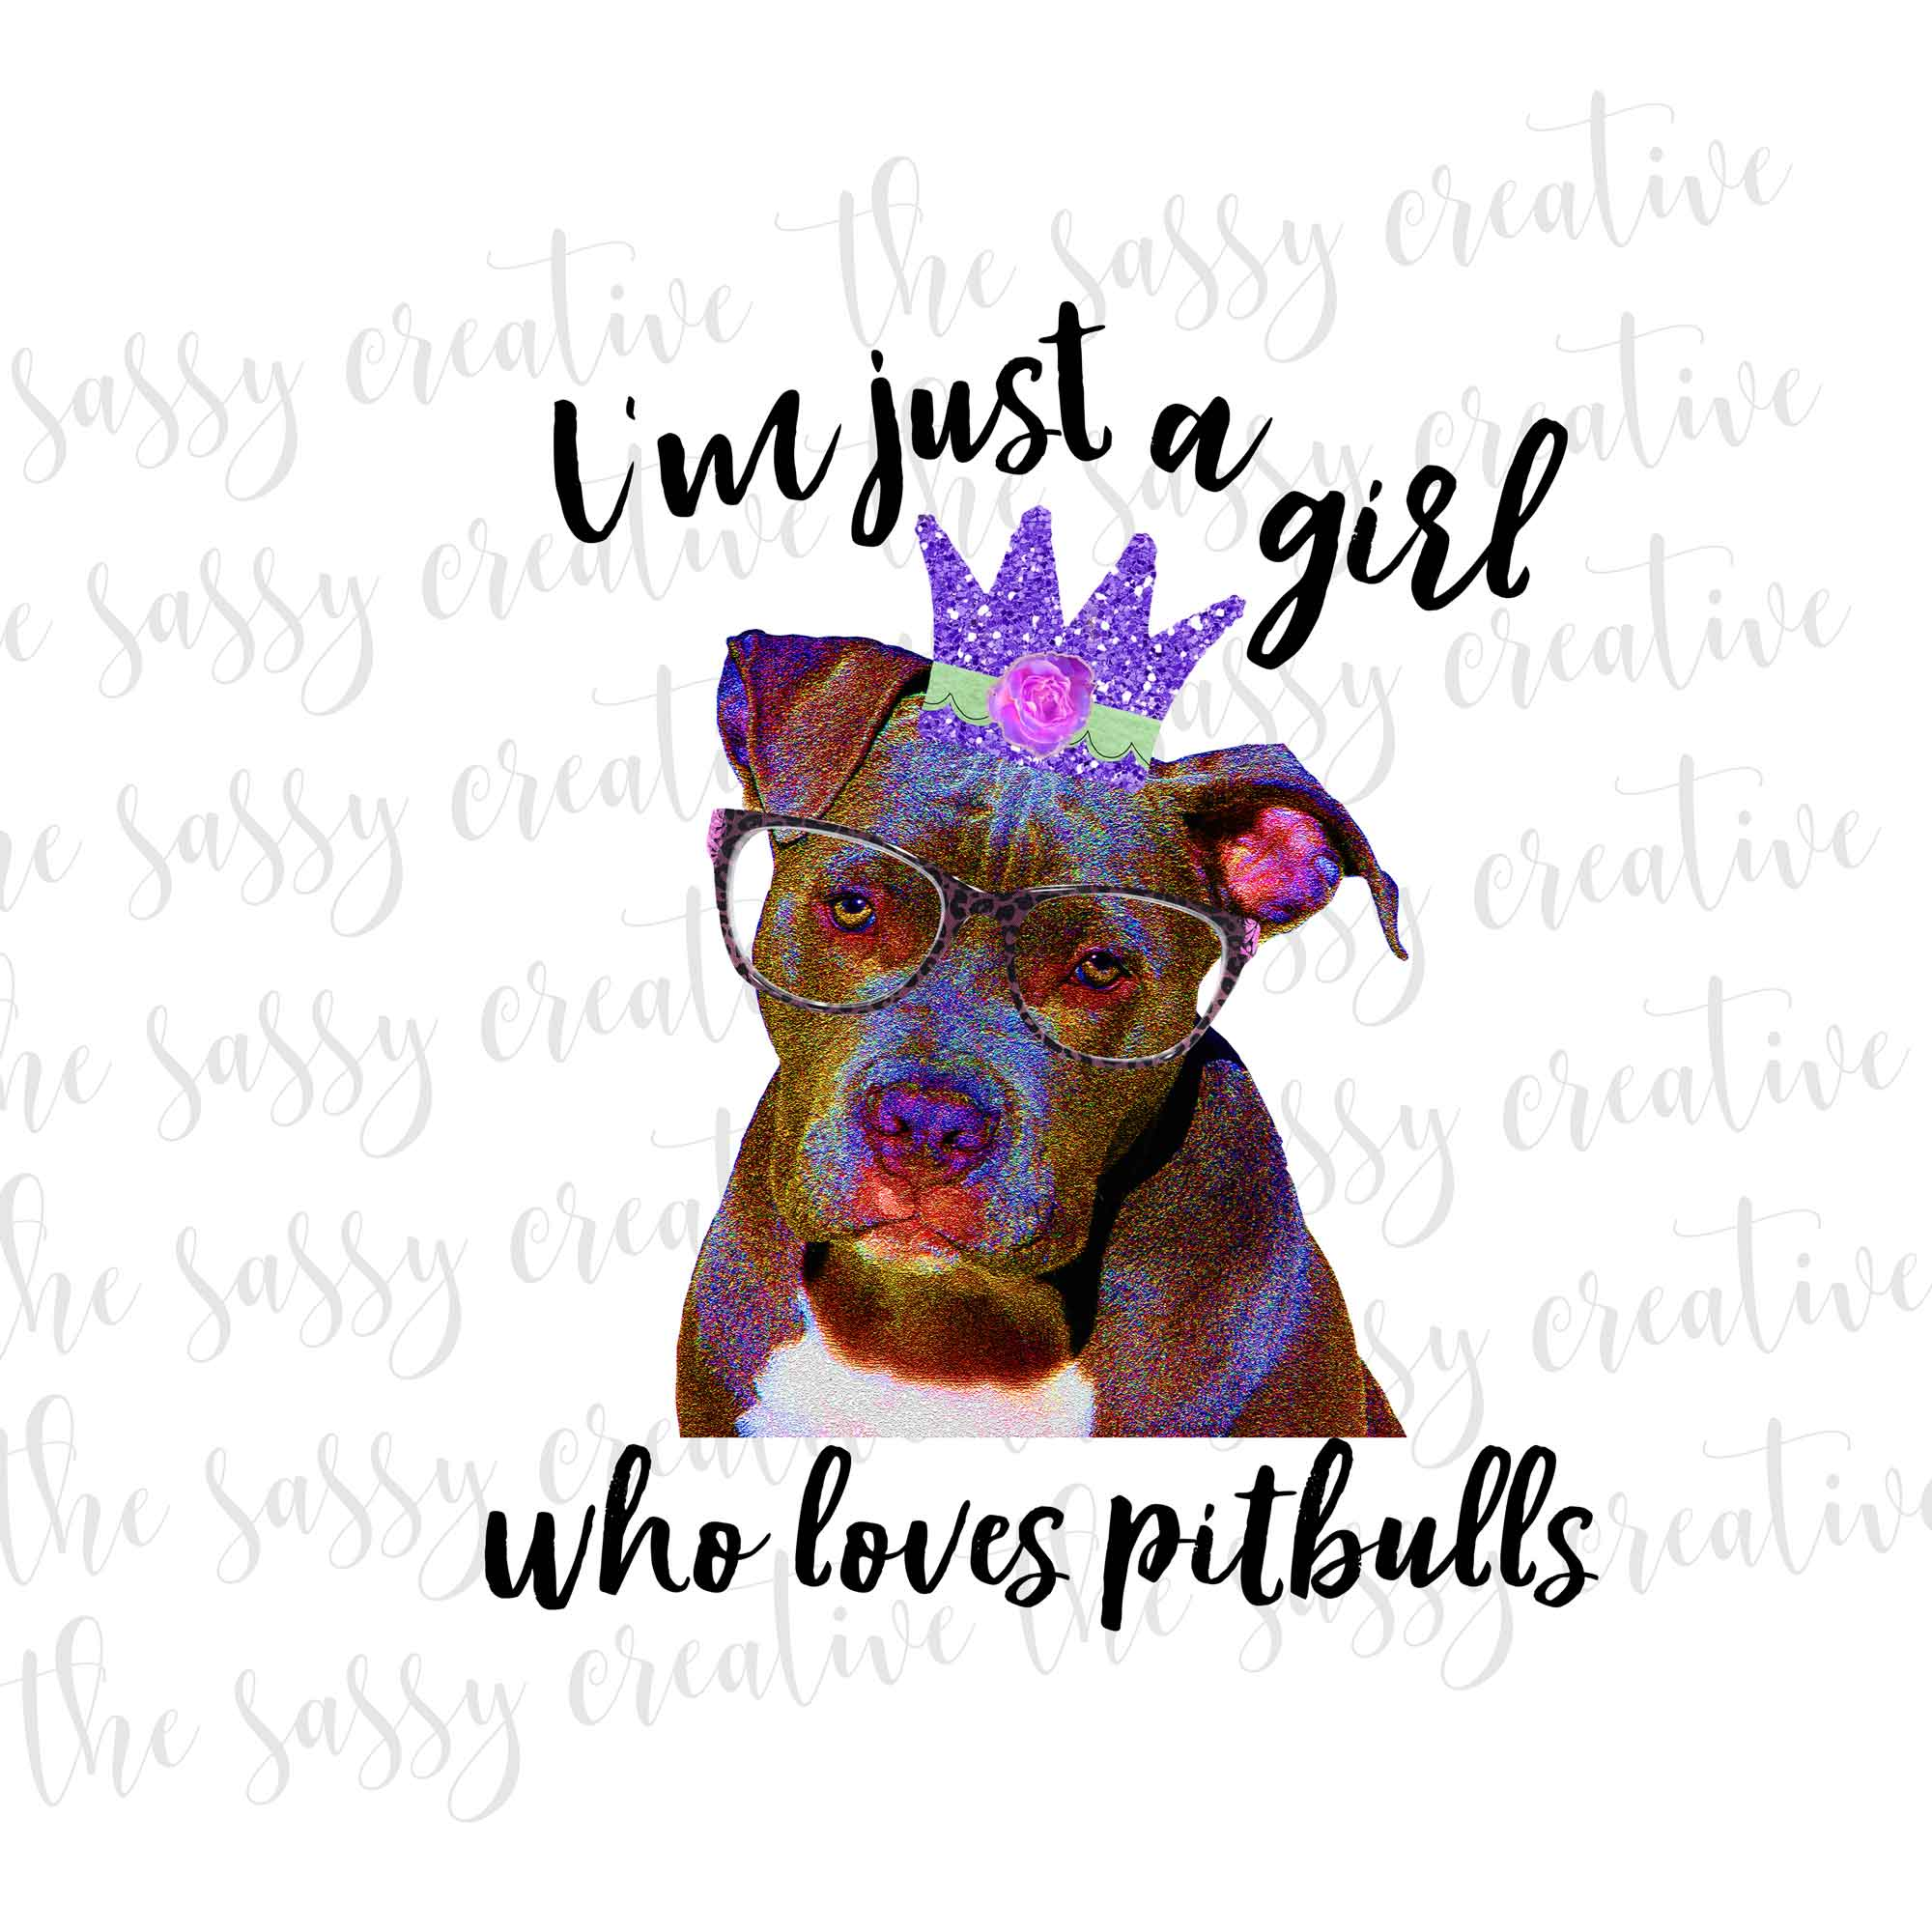 girlwholovespitbullscover